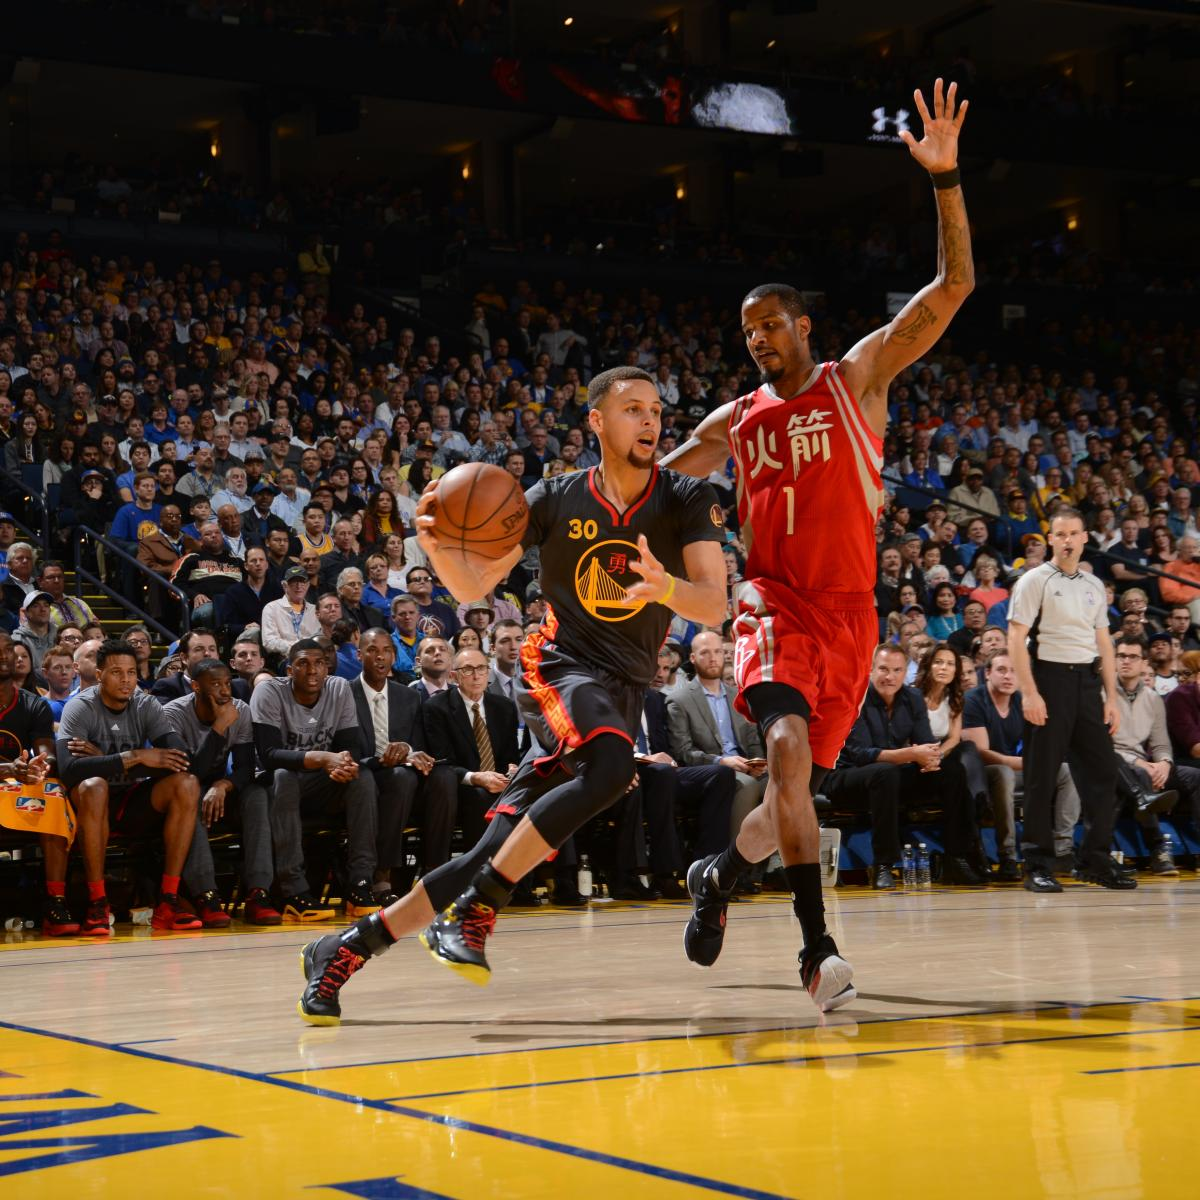 Rockets And The Warriors Game: Rockets Vs. Warriors: Score, Highlights And Reaction From